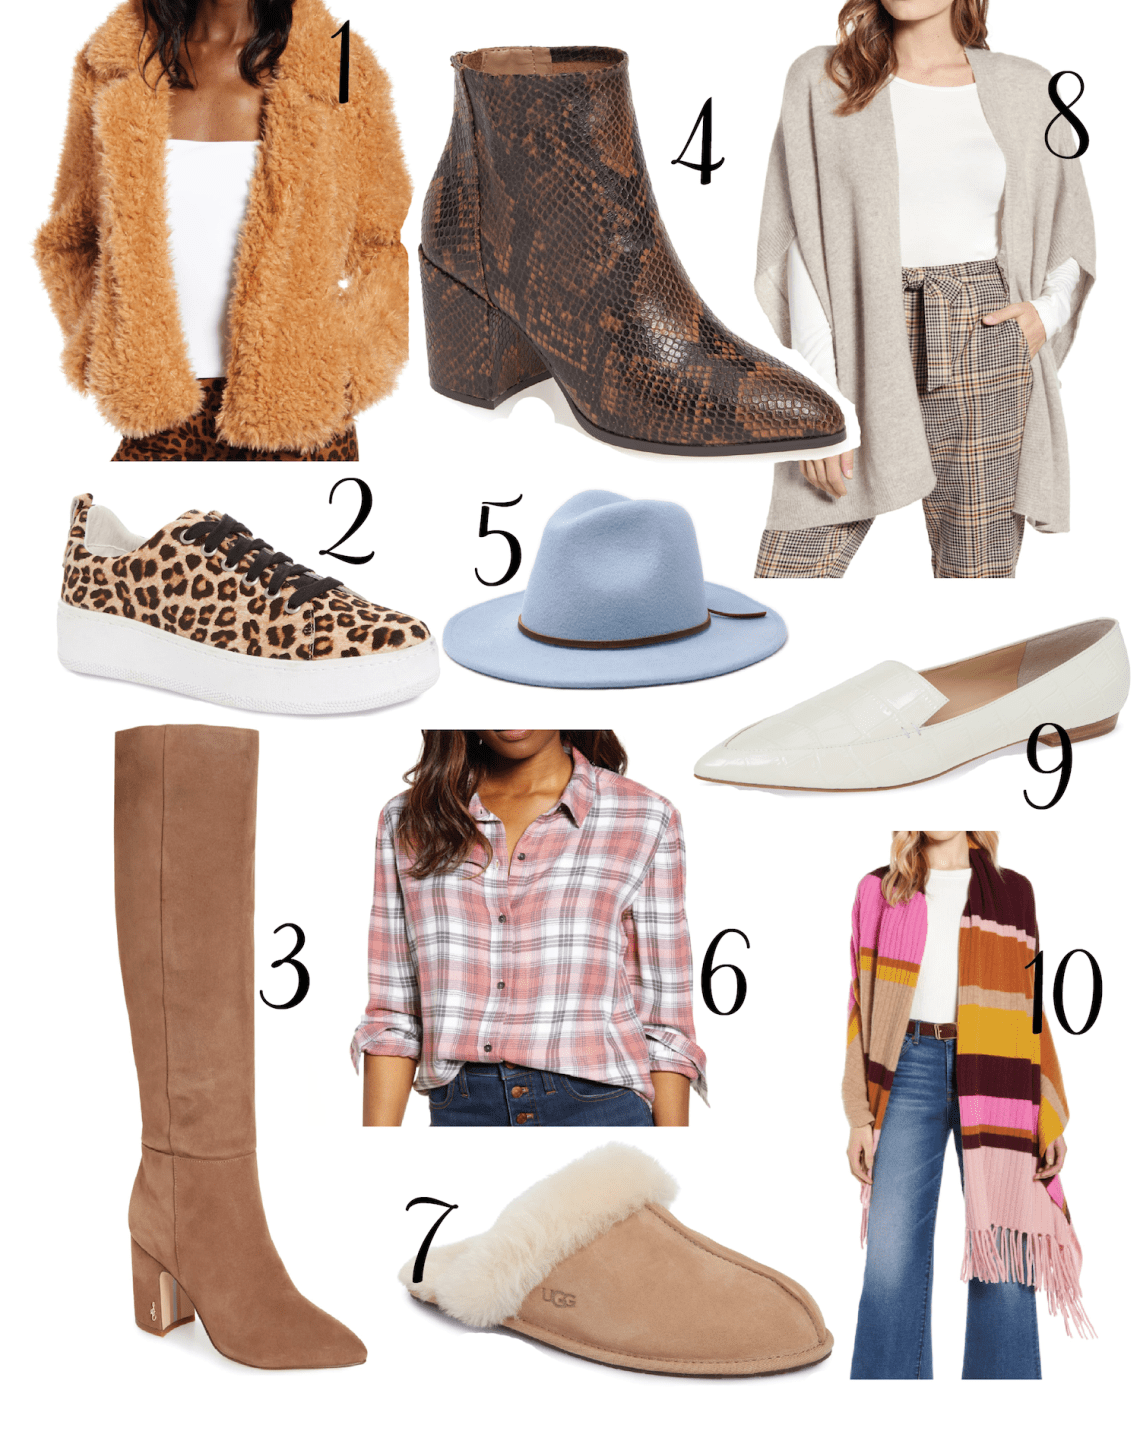 My picks for the 2019 Nordstrom Anniversary Sale